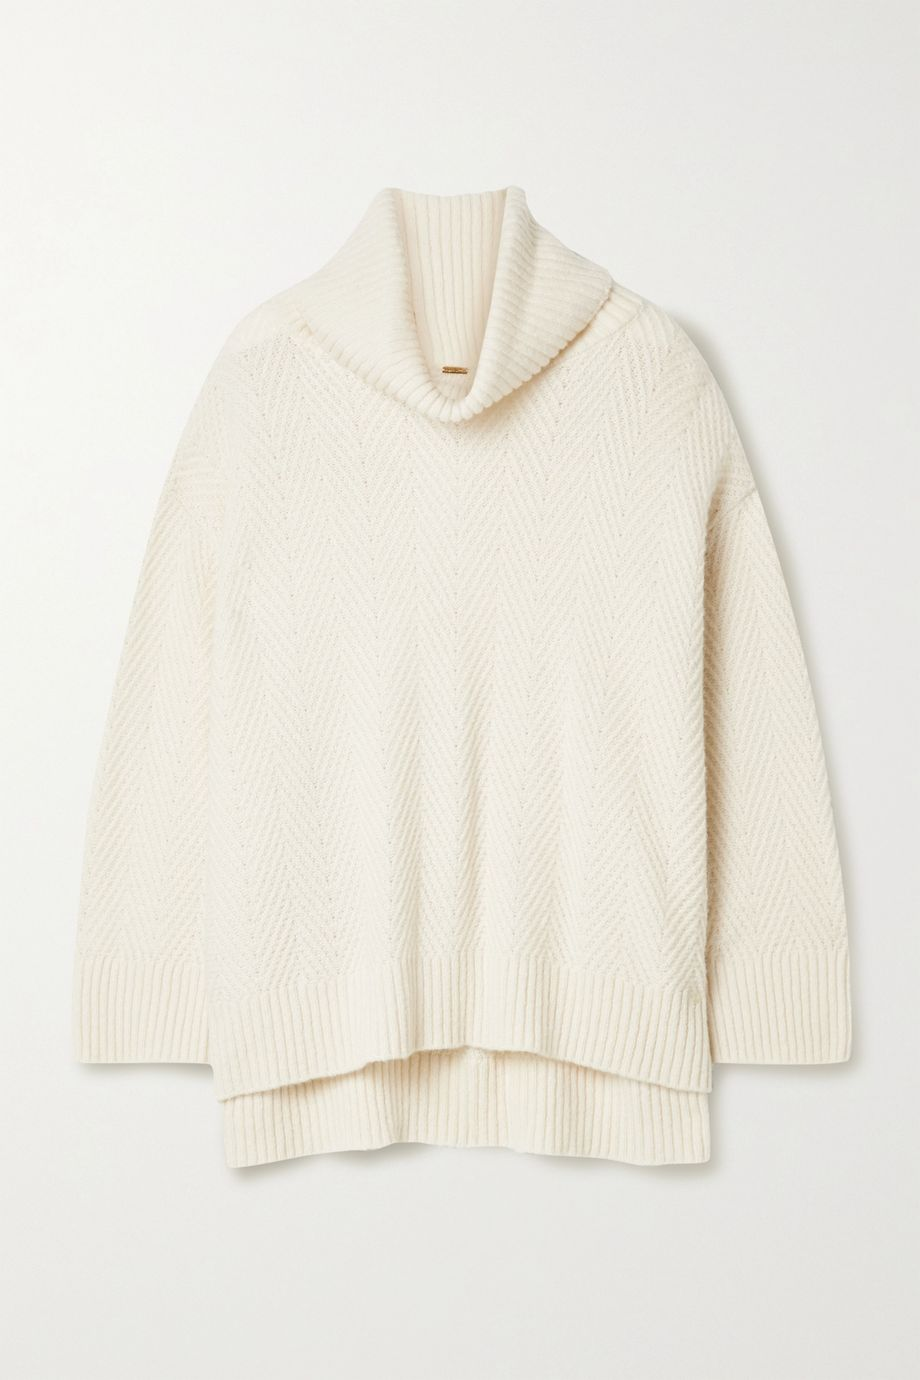 Adam Lippes Cashmere and silk-blend turtleneck sweater